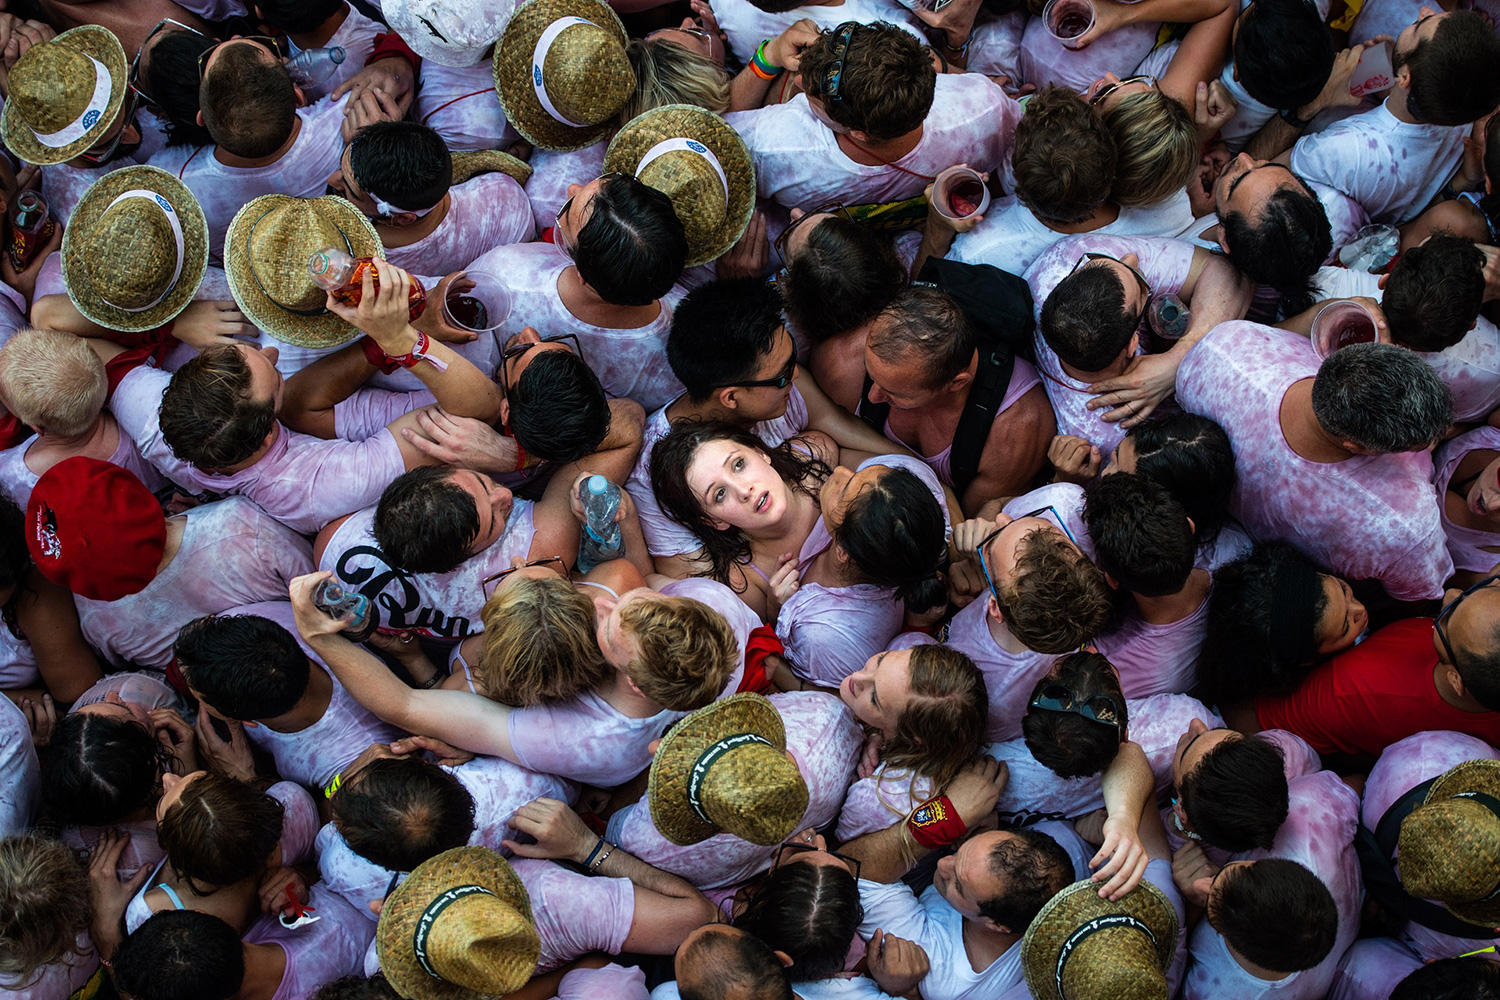 National Geographic's 2015 Roundup of Greatest Travel Photos